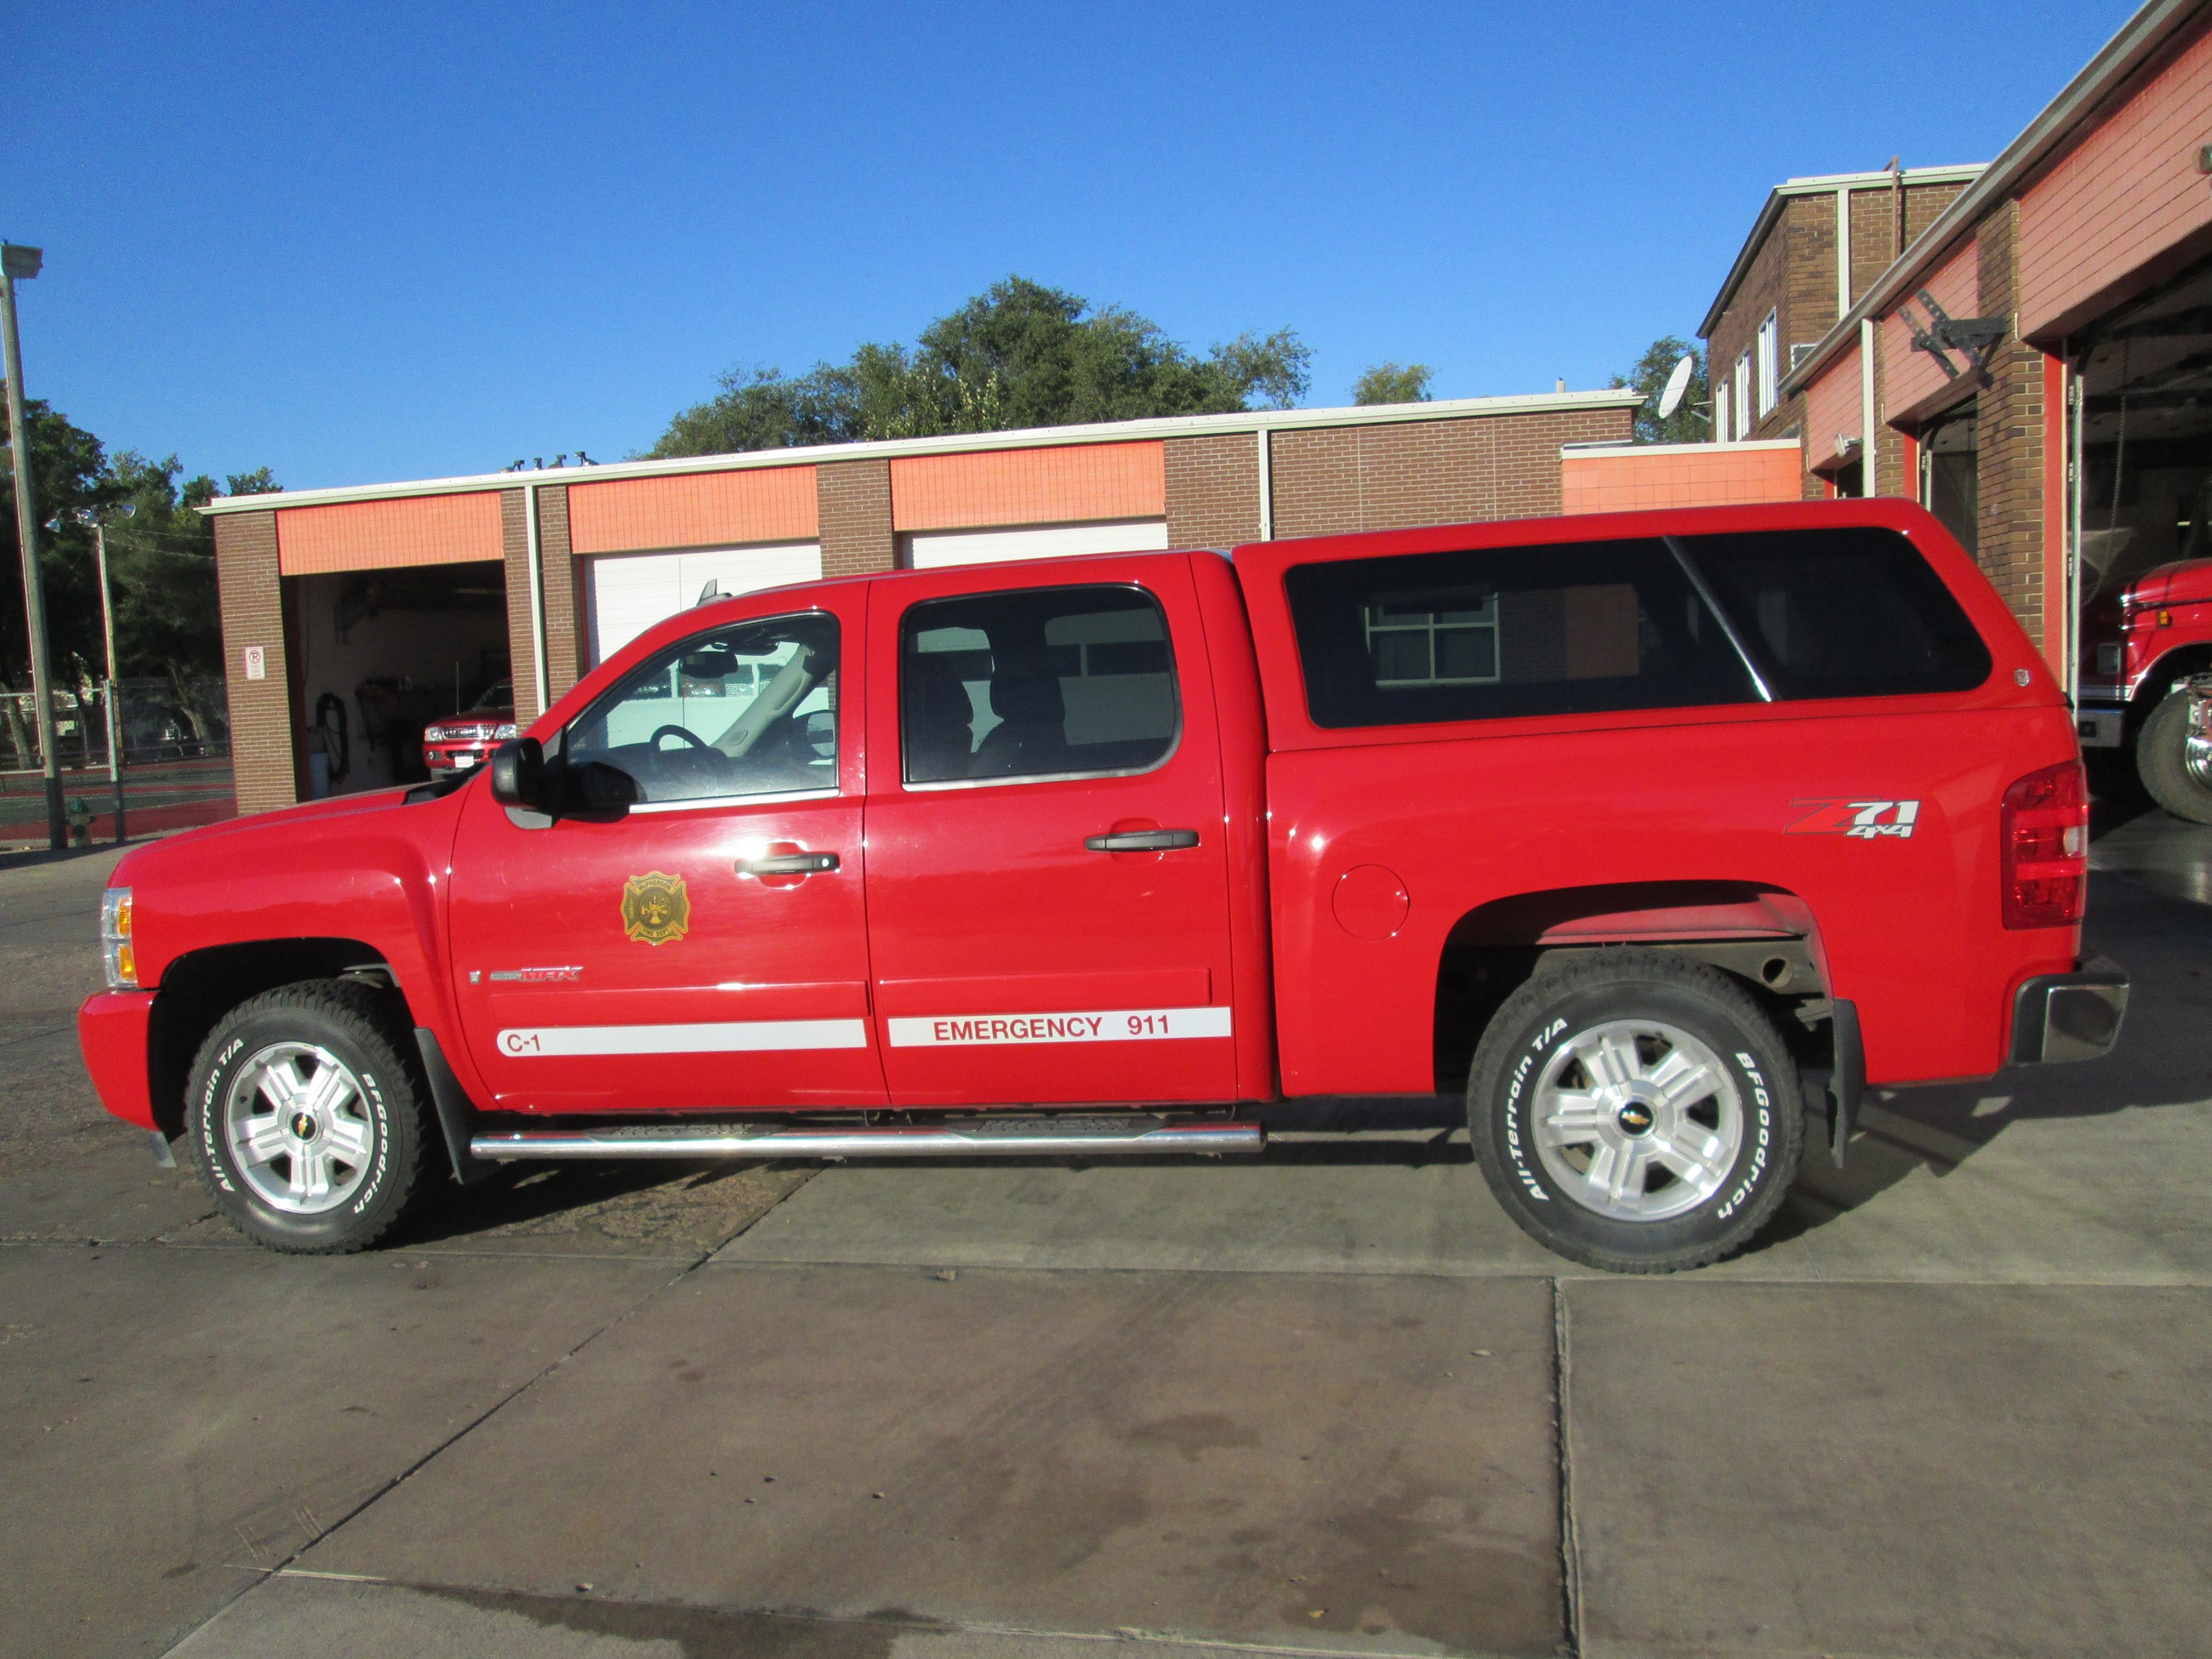 Red and white sports utility vehicle with Fire Department logo on the side.